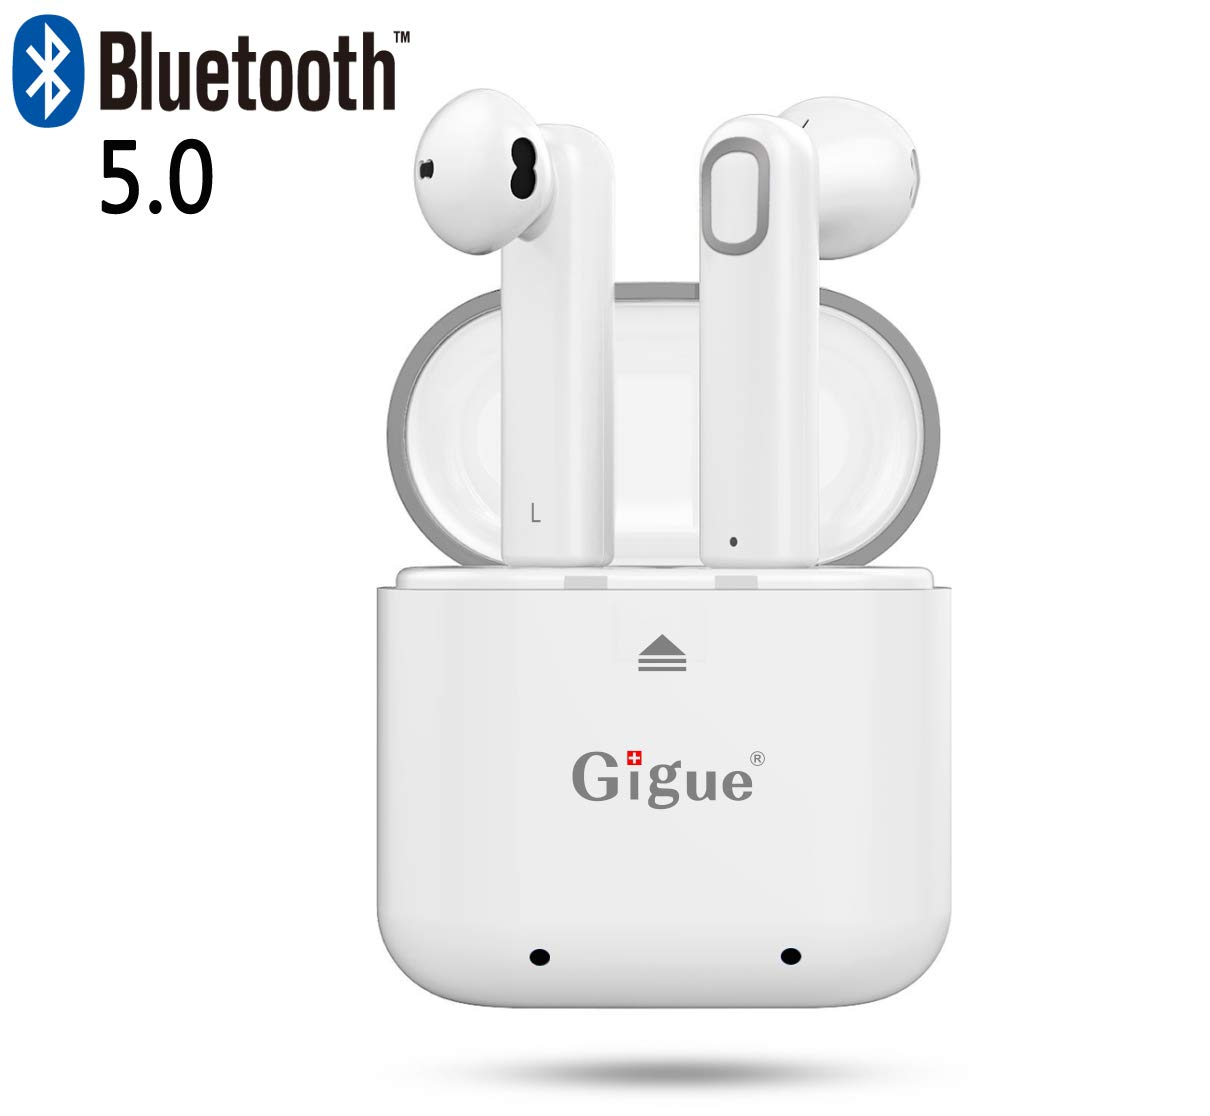 True Wireless Earbuds, Gigue Bluetooth 5.0 Earphones Portable TWS Headphone with Charging Case, Extral-Long Battery Life